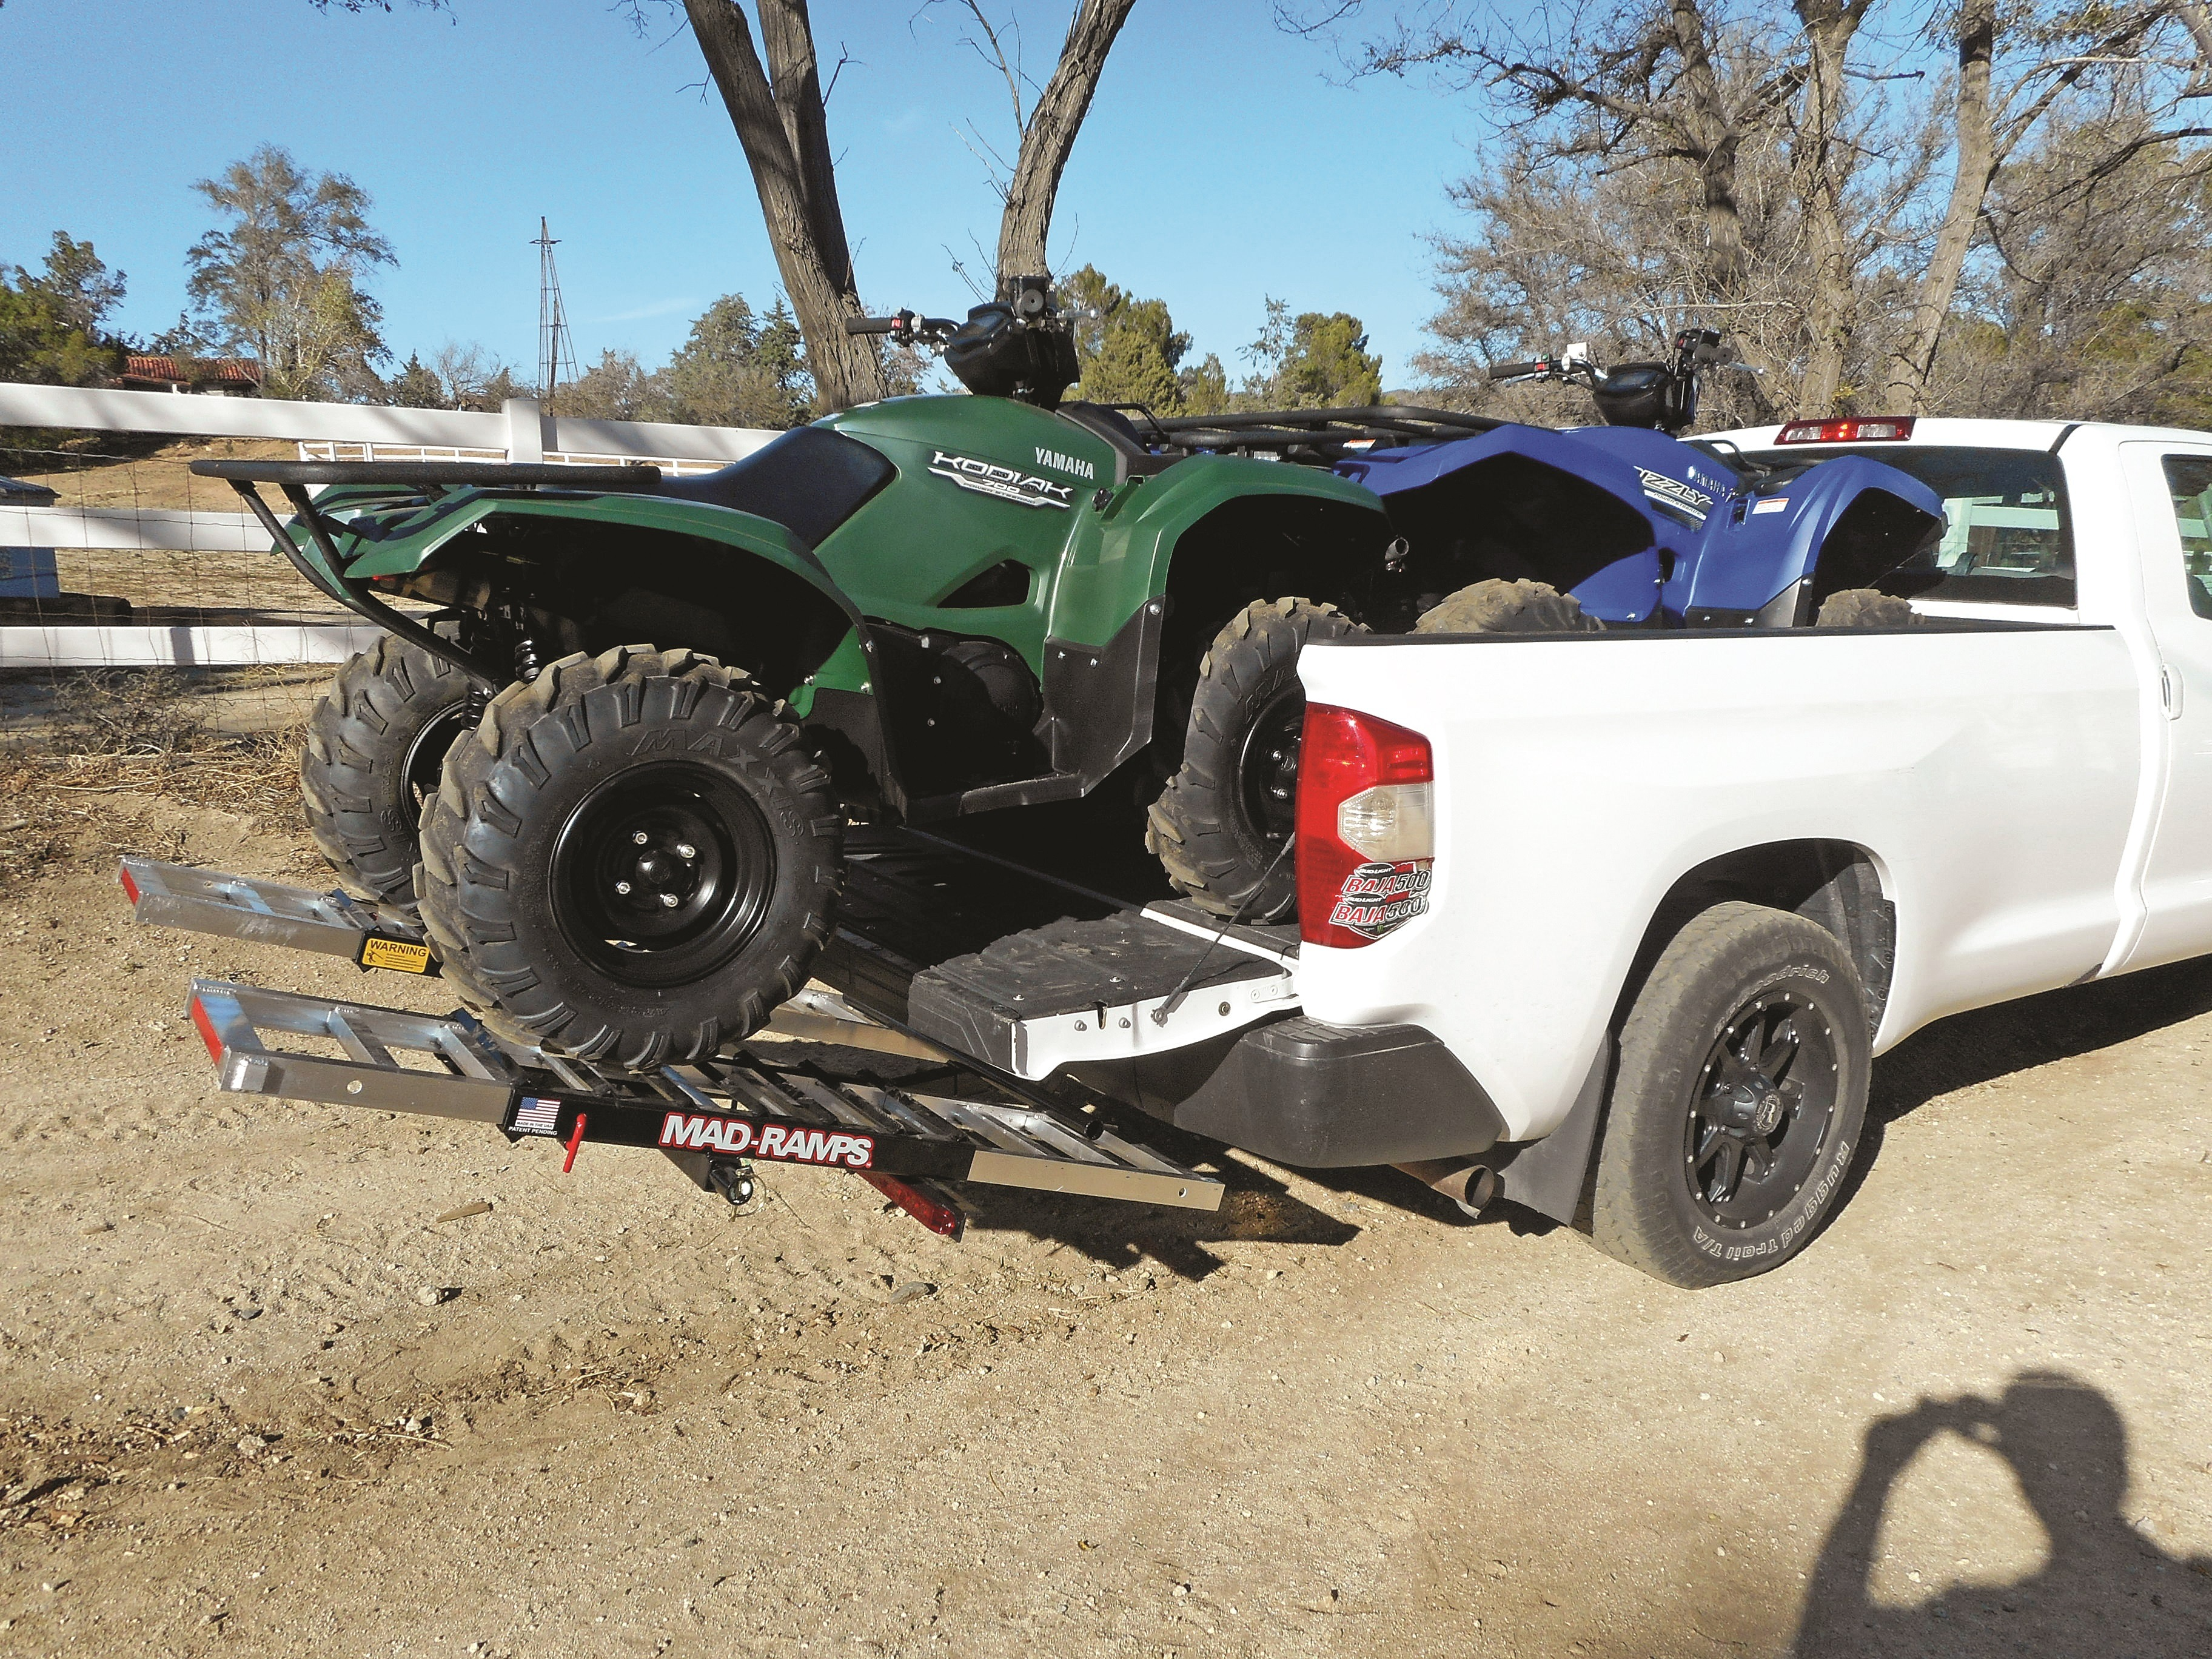 Chevy Silverado transports two ATVs with MAD-RAMPS